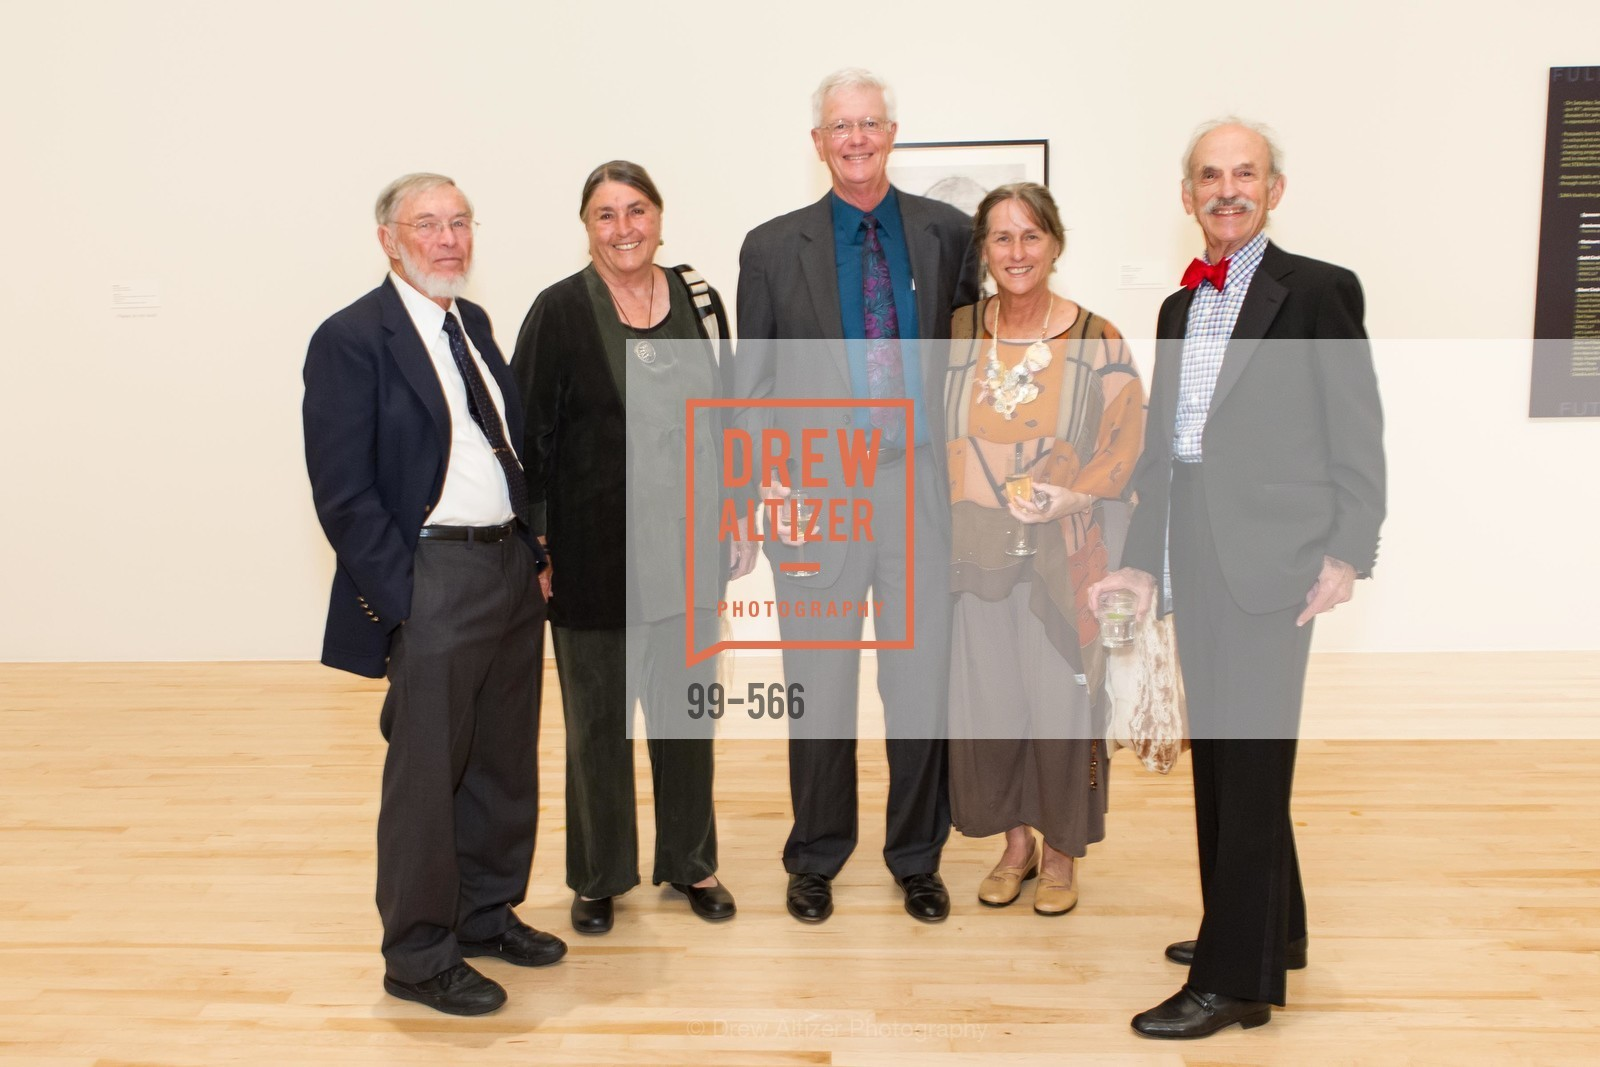 David Struthers, Jean Struthers, Peter Cross, Melanie Cross, Peter Lipman, SAN JOSE MUSEUM OF ART'S Spectrum Gala - 45th Anniversary, US, September 13th, 2014,Drew Altizer, Drew Altizer Photography, full-service agency, private events, San Francisco photographer, photographer california